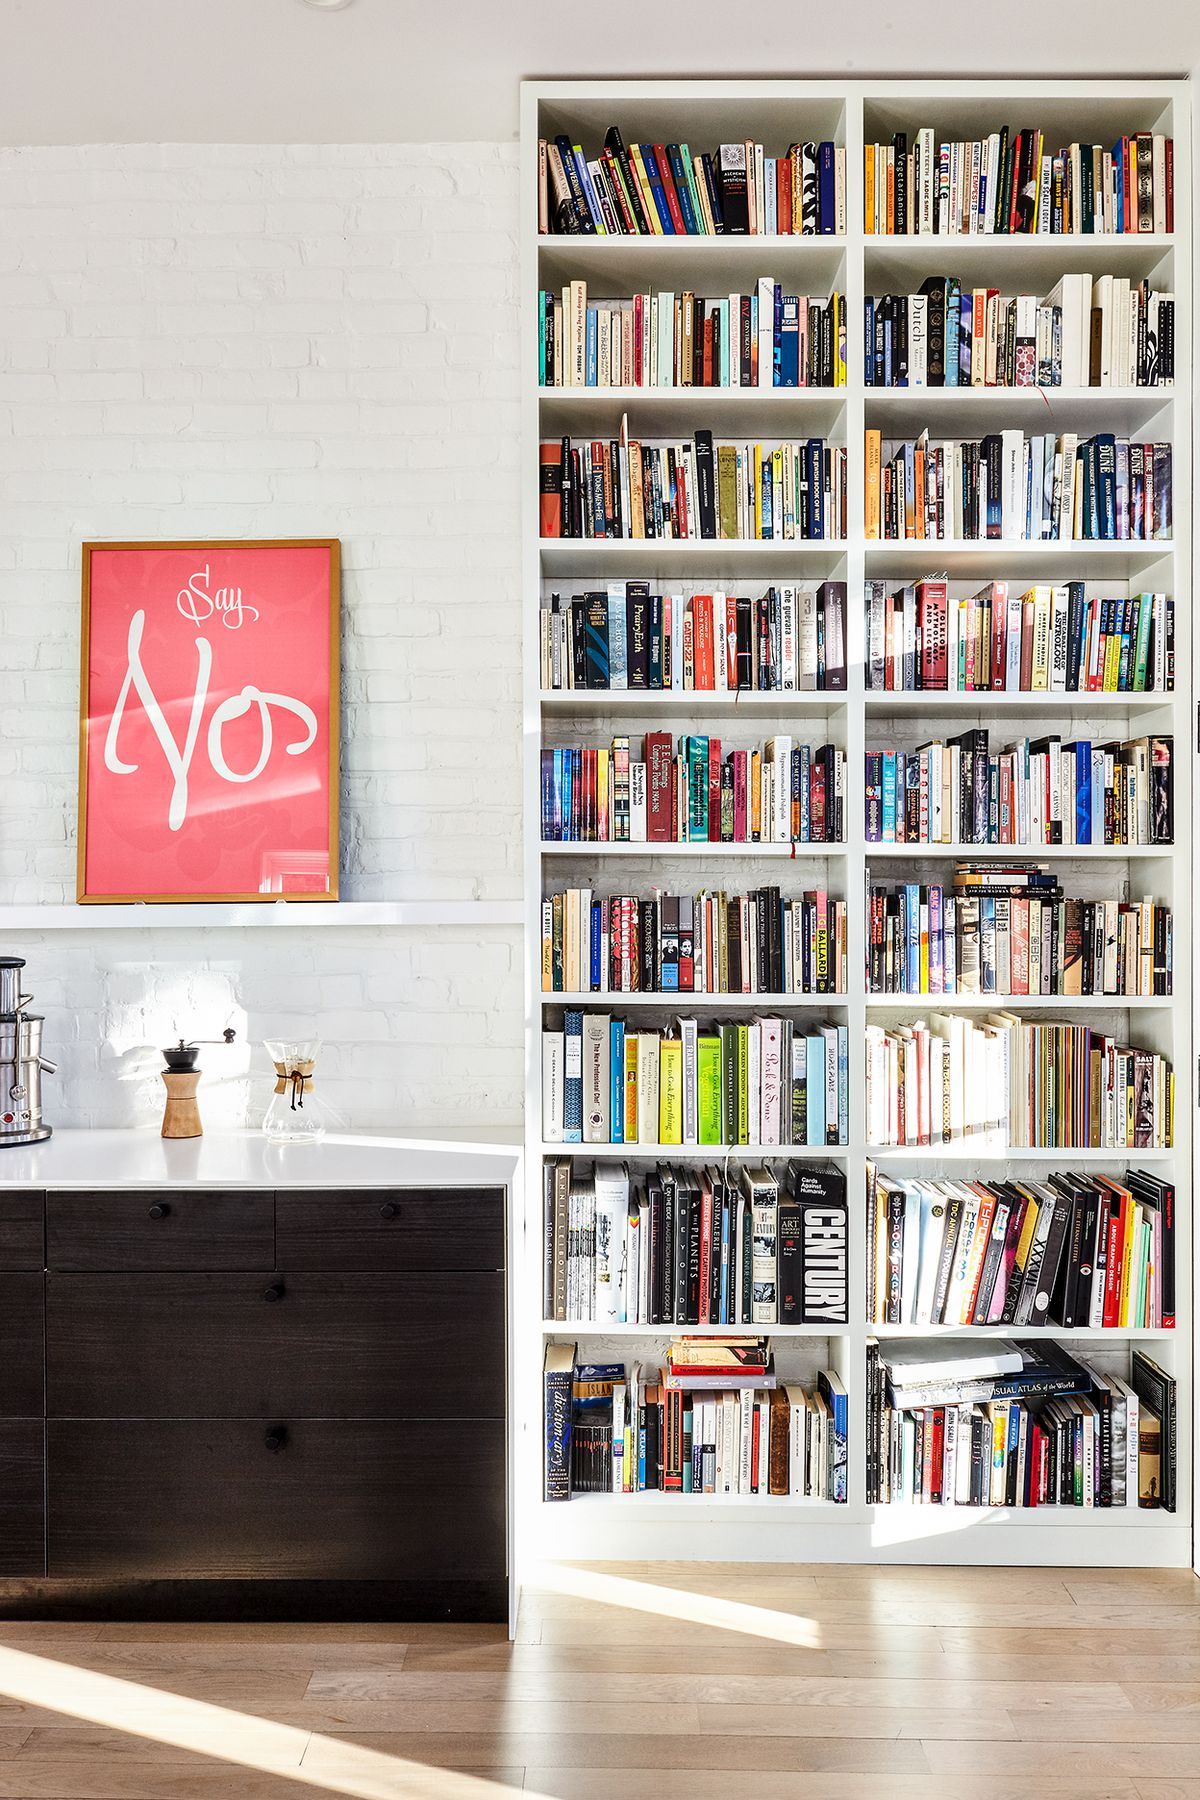 A room with a floor to ceiling bookcase full of books. Next to the bookcase is a black dresser. The wall is exposed painted white brick. There is a work of art hanging over the black dresser.